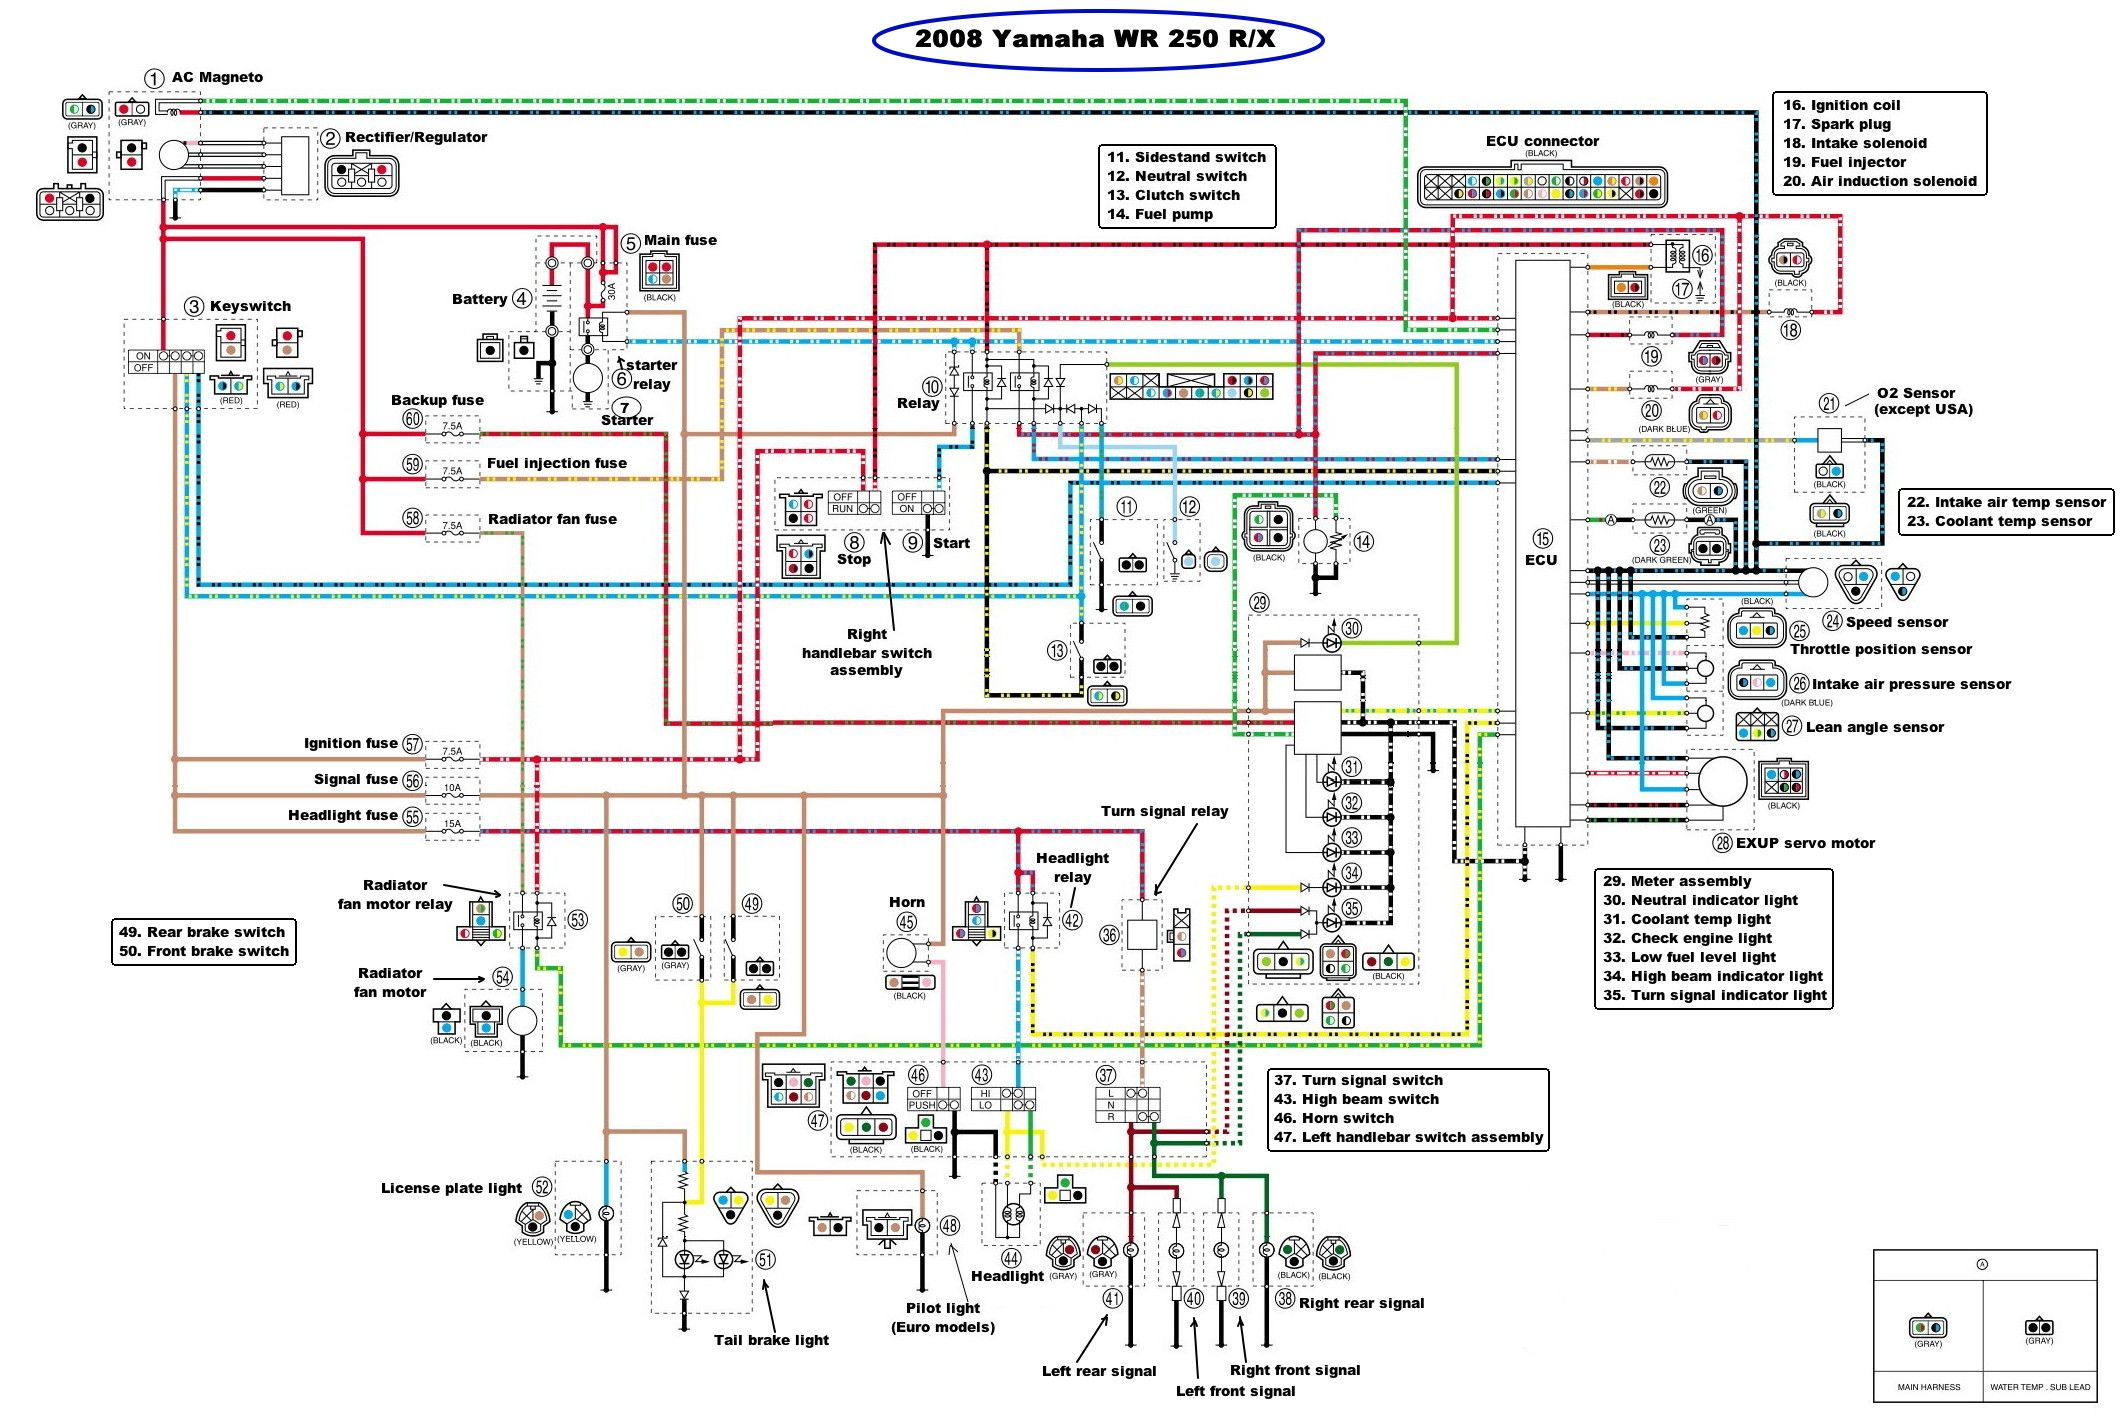 Yamaha R6 Schematics Wiring Diagram Strategy Design Plan \u2022 2012 Yamaha R6  Wiring-Diagram 2006 Yamaha R6 Wiring Diagram